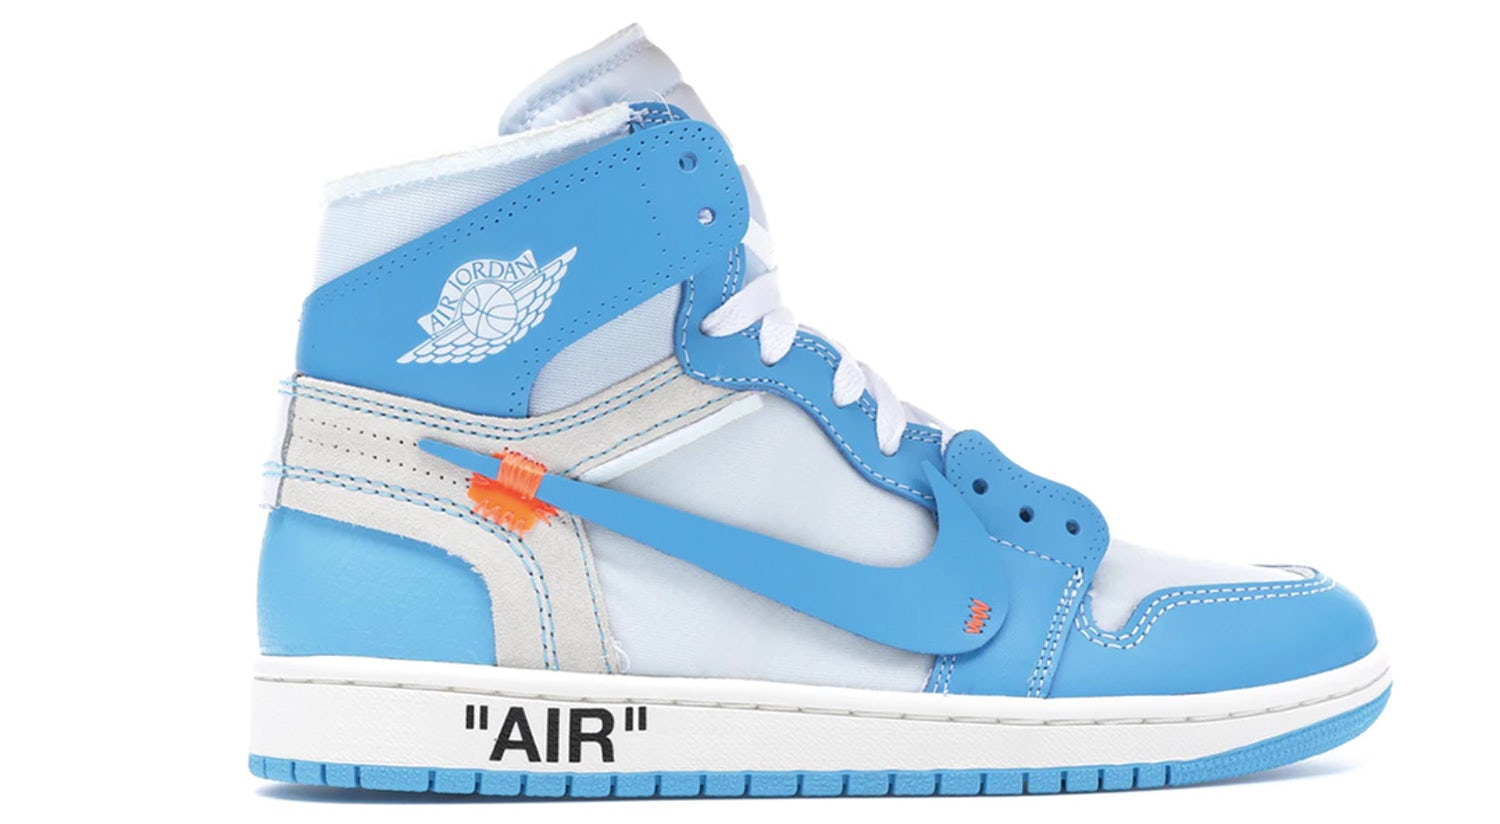 Carolina Off White 1s